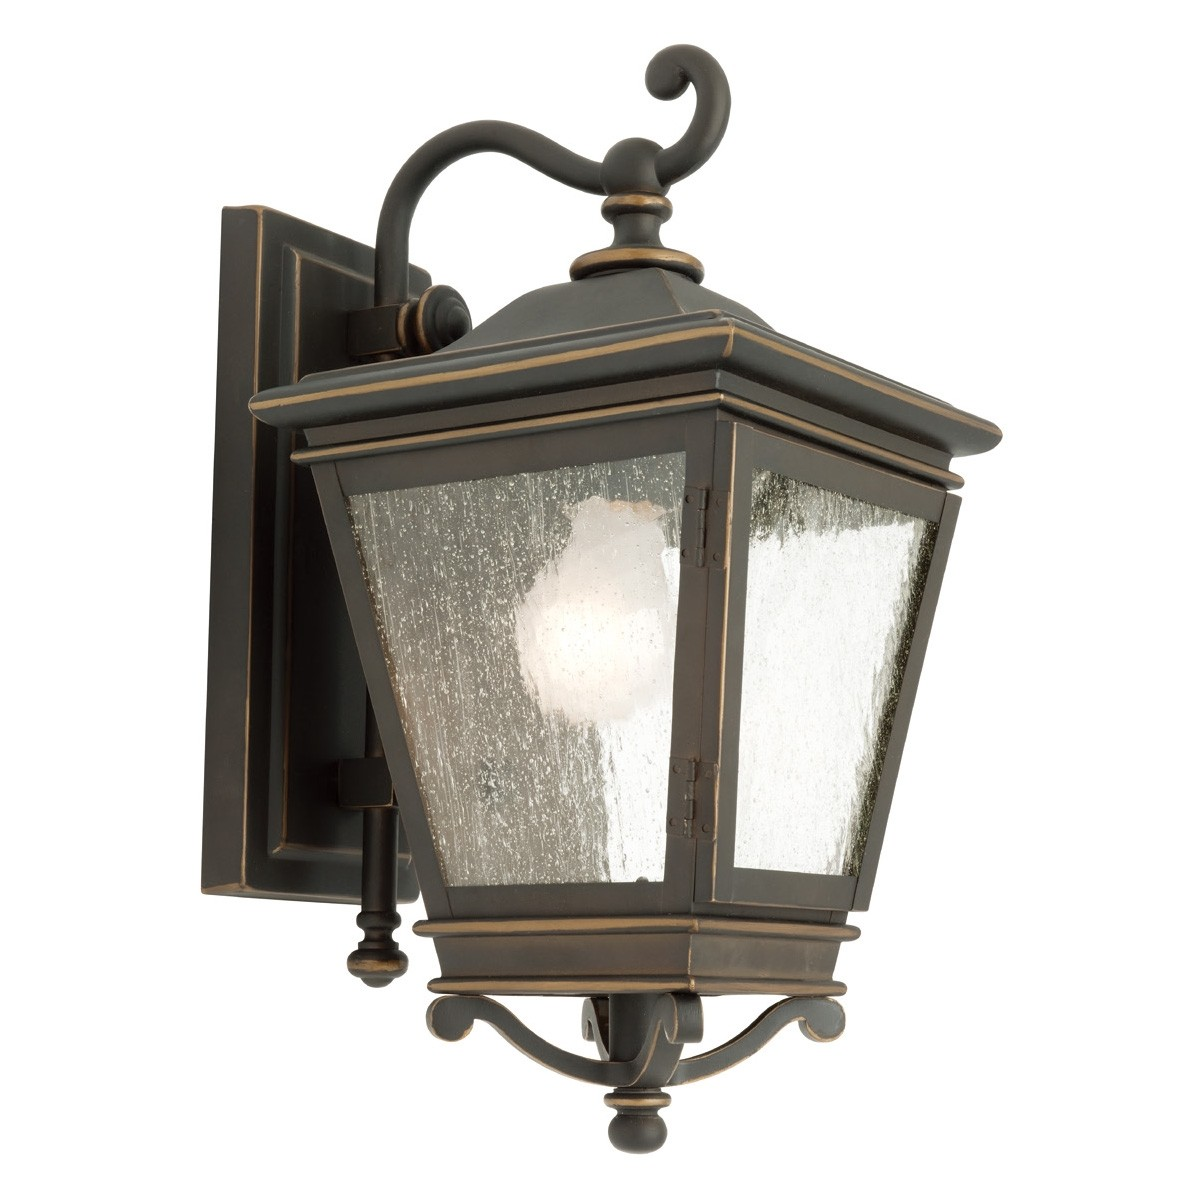 Nottingham IP43 Outdoor Wall Light - Bronze